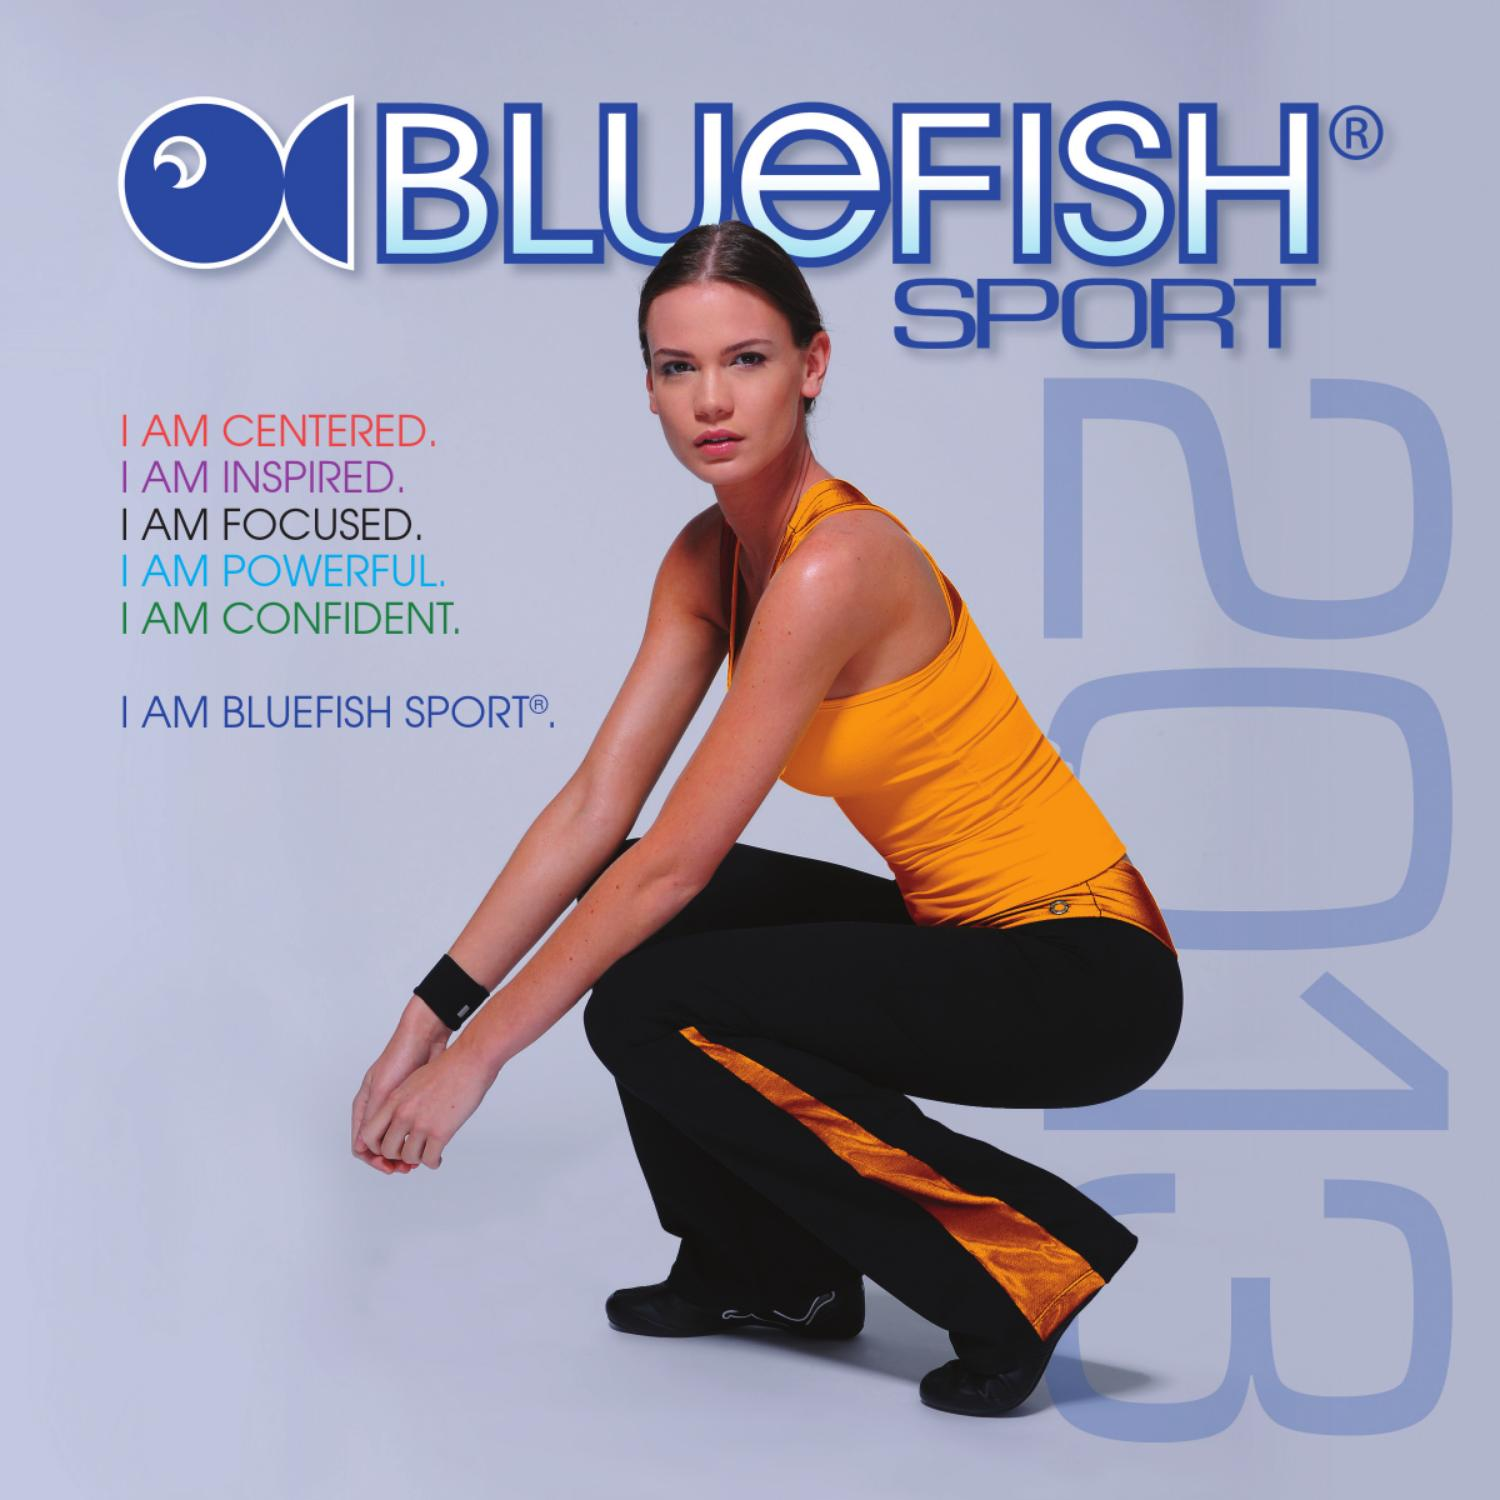 df40b67968fb31 Bluefish Sport® 2013 Collections Lookbook by Bluefish Sport® - issuu